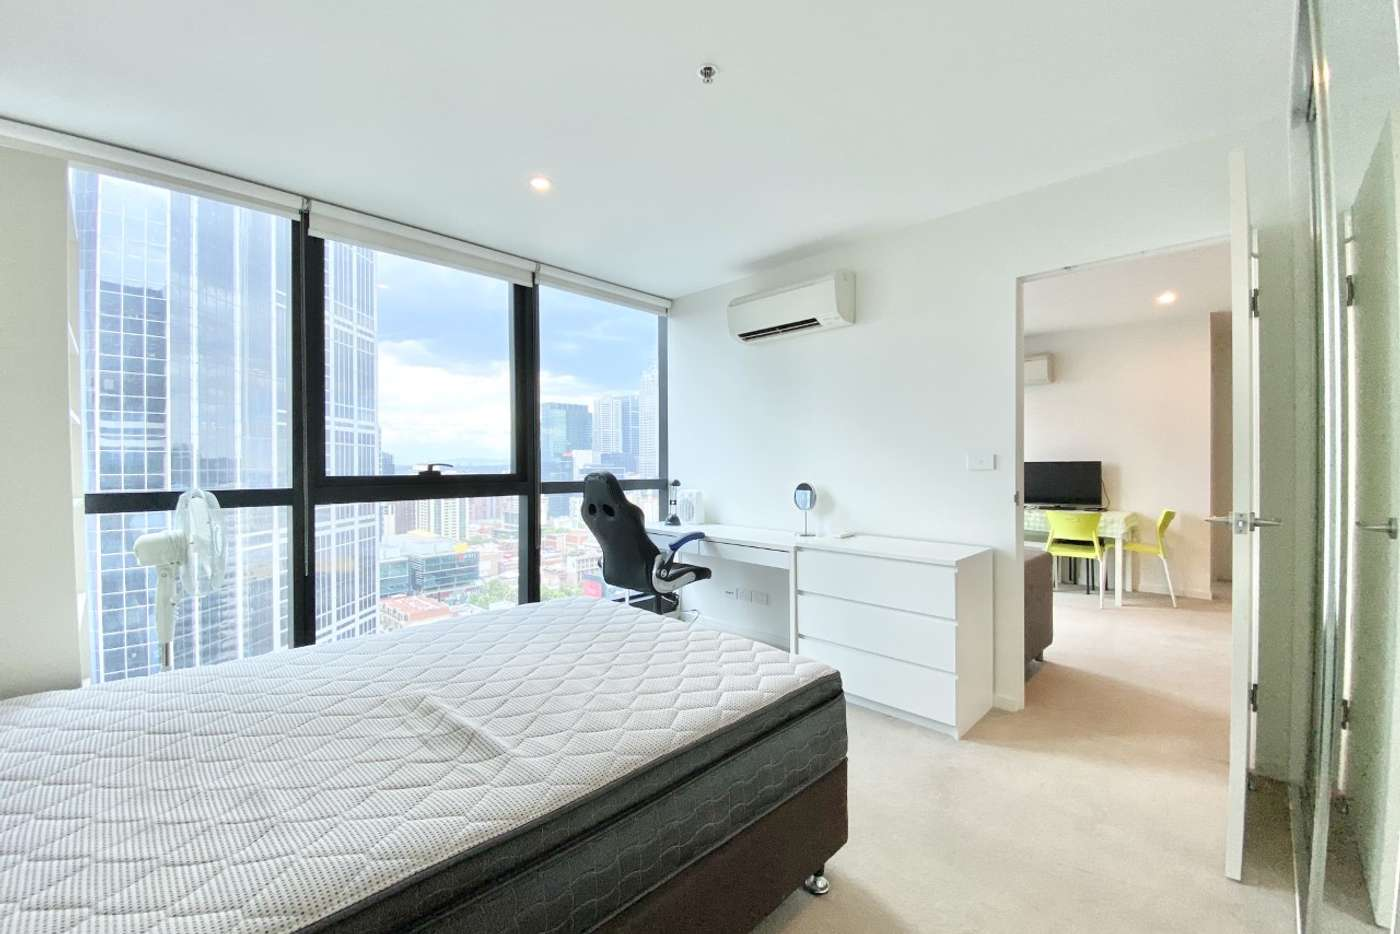 Main view of Homely apartment listing, 2908/8 Sutherland Street, Melbourne VIC 3000